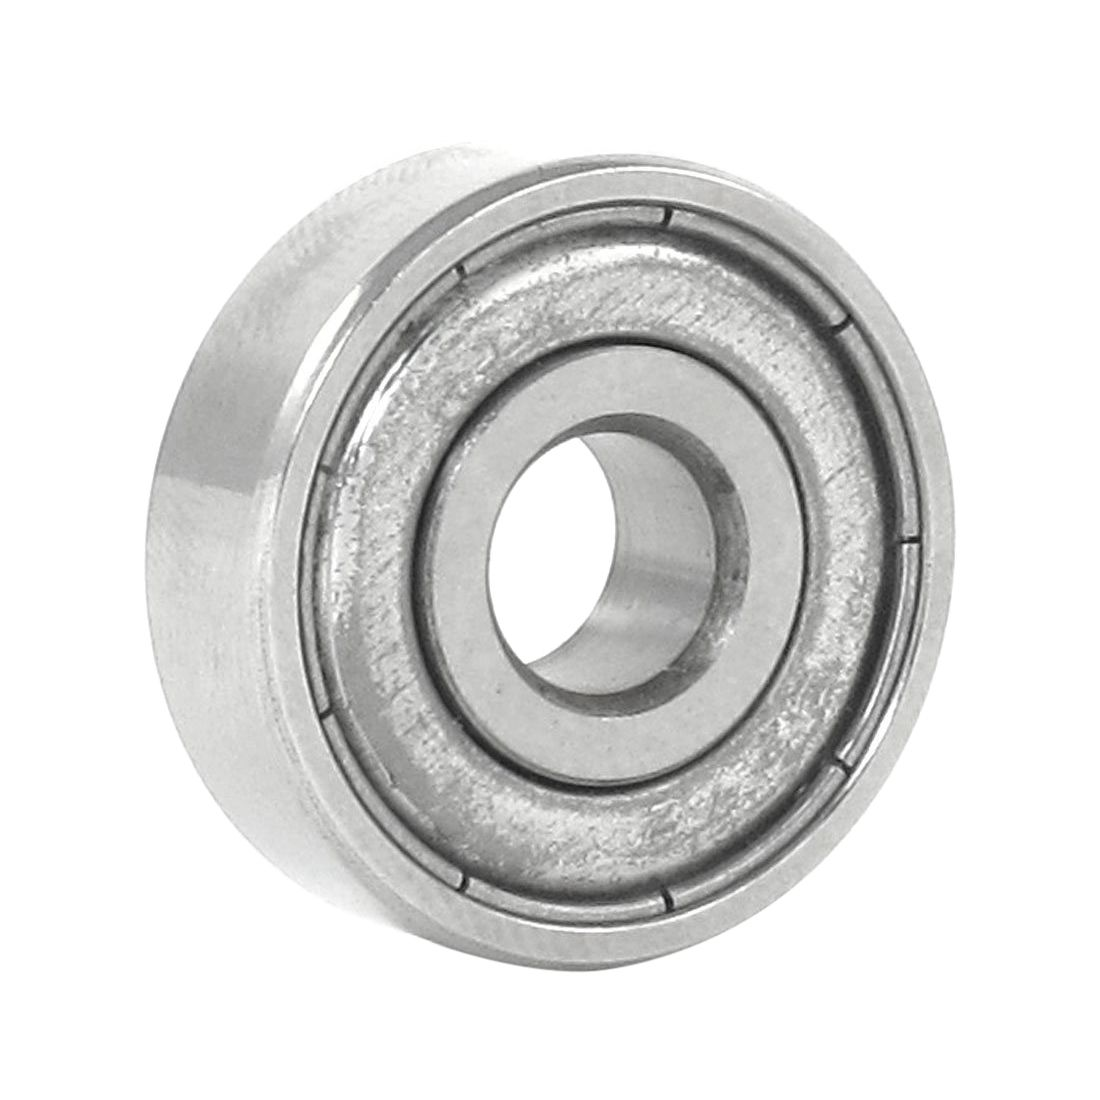 Hot Sale Silver Metal 627Z Deep Groove Ball Bearing 7mm X 22mm X 8mm 627Z Metal